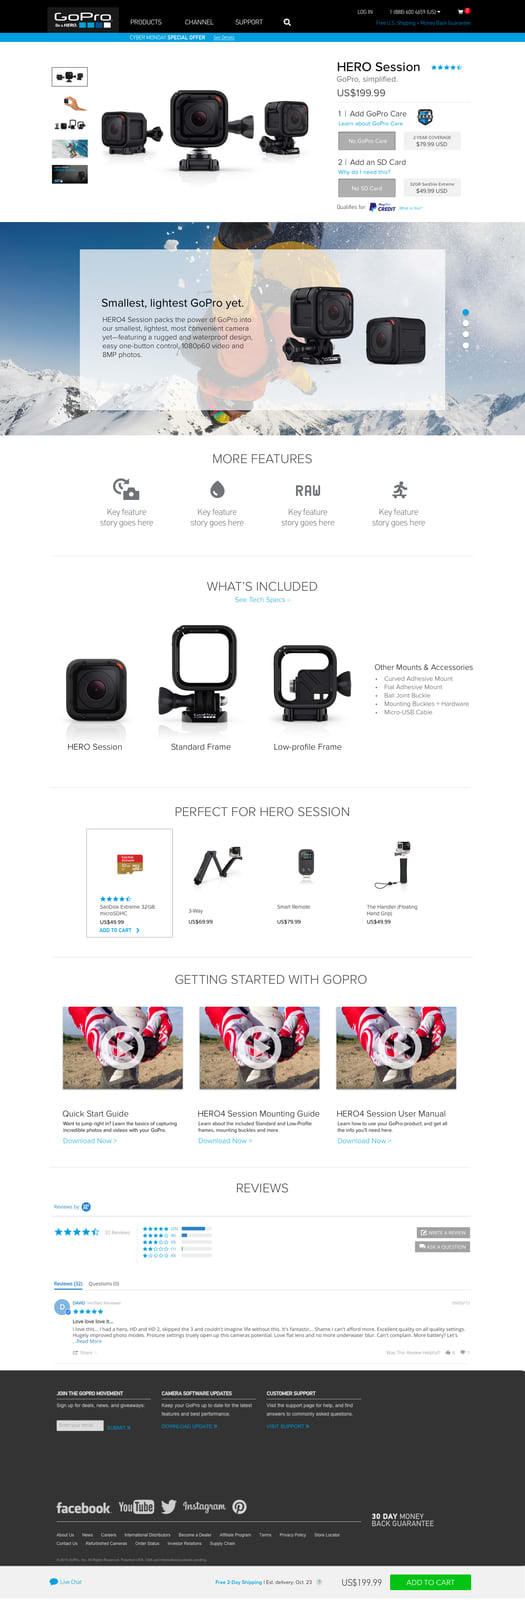 GoPro | Product Page Redesign